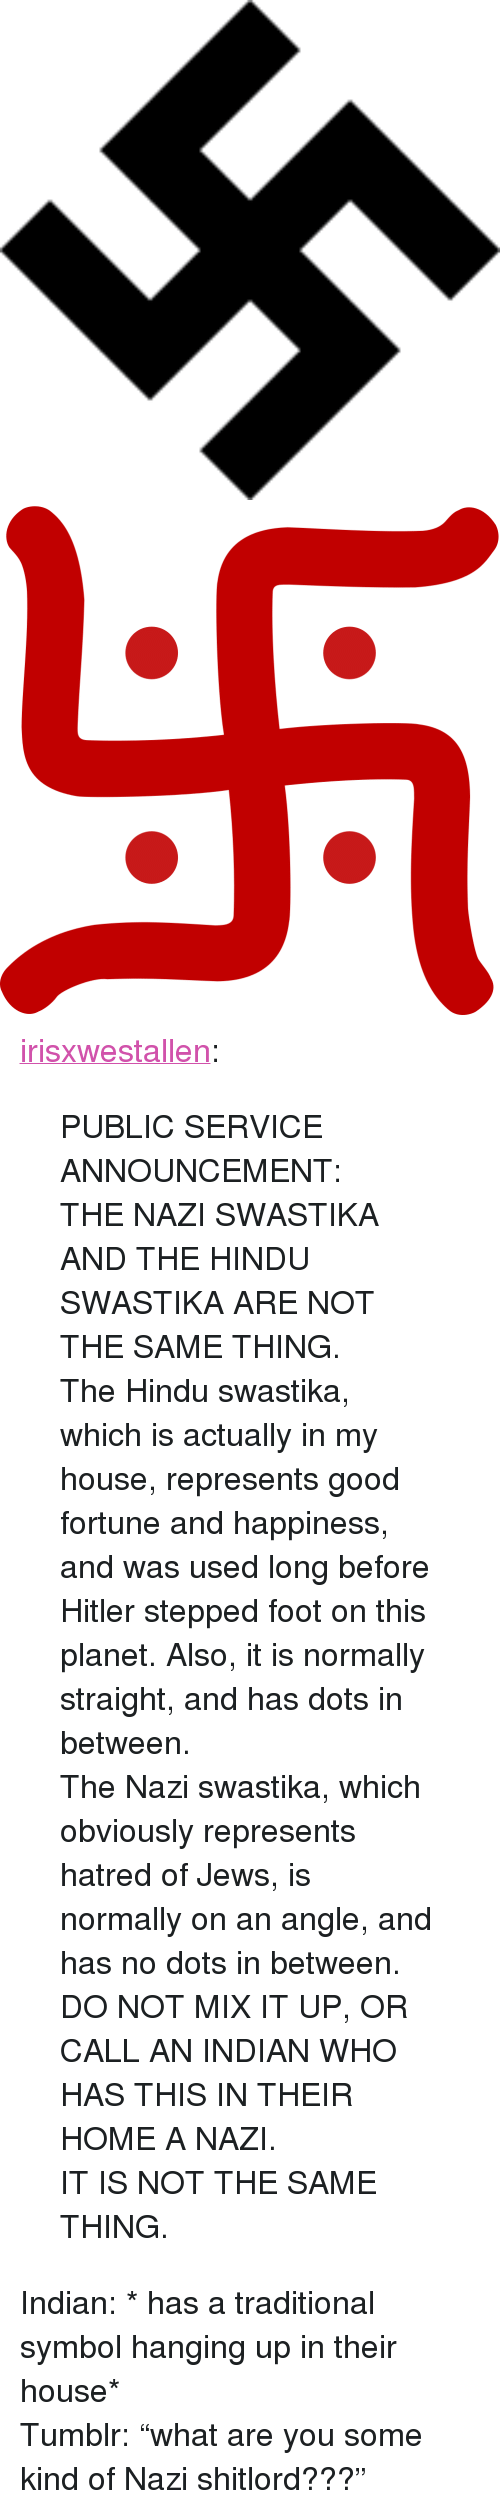 """hindu: <p><a href=""""http://irisxwestallen.tumblr.com/post/156850309123/public-service-announcement-the-nazi-swastika"""" class=""""tumblr_blog"""">irisxwestallen</a>:</p><blockquote> <p>PUBLIC SERVICE ANNOUNCEMENT: </p>  <p>THE NAZI SWASTIKA AND THE HINDU SWASTIKA ARE NOT THE SAME THING. </p>  <p>The Hindu swastika, which is actually in my house, represents good fortune and happiness, and was used long before Hitler stepped foot on this planet. Also, it is normally straight, and has dots in between. </p>  <p>The Nazi swastika, which obviously represents hatred of Jews, is normally on an angle, and has no dots in between. </p>  <p>DO NOT MIX IT UP, OR CALL AN INDIAN WHO HAS THIS IN THEIR HOME A NAZI. </p>  <p>IT IS NOT THE SAME THING.</p> </blockquote>  <p>Indian: * has a traditional symbol hanging up in their house*<br/>Tumblr: &ldquo;what are you some kind of Nazi shitlord???&rdquo;</p>"""